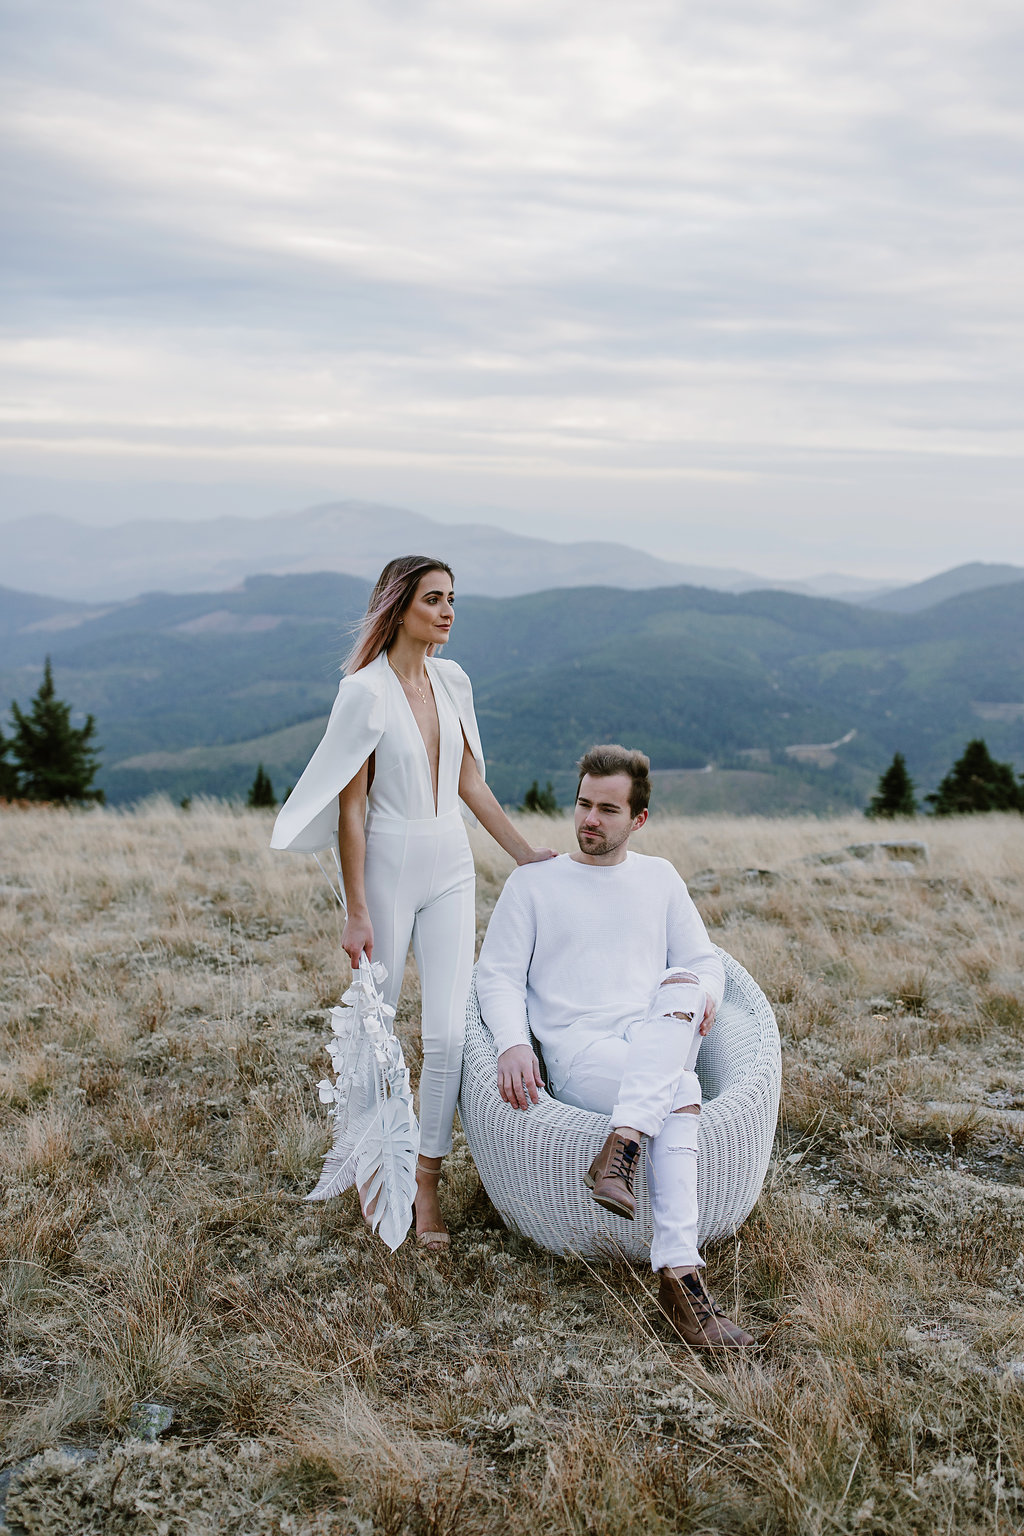 spokane-washington-amy-stone-photography-mount-spokane-adventureous-modern-elopement-photos-66